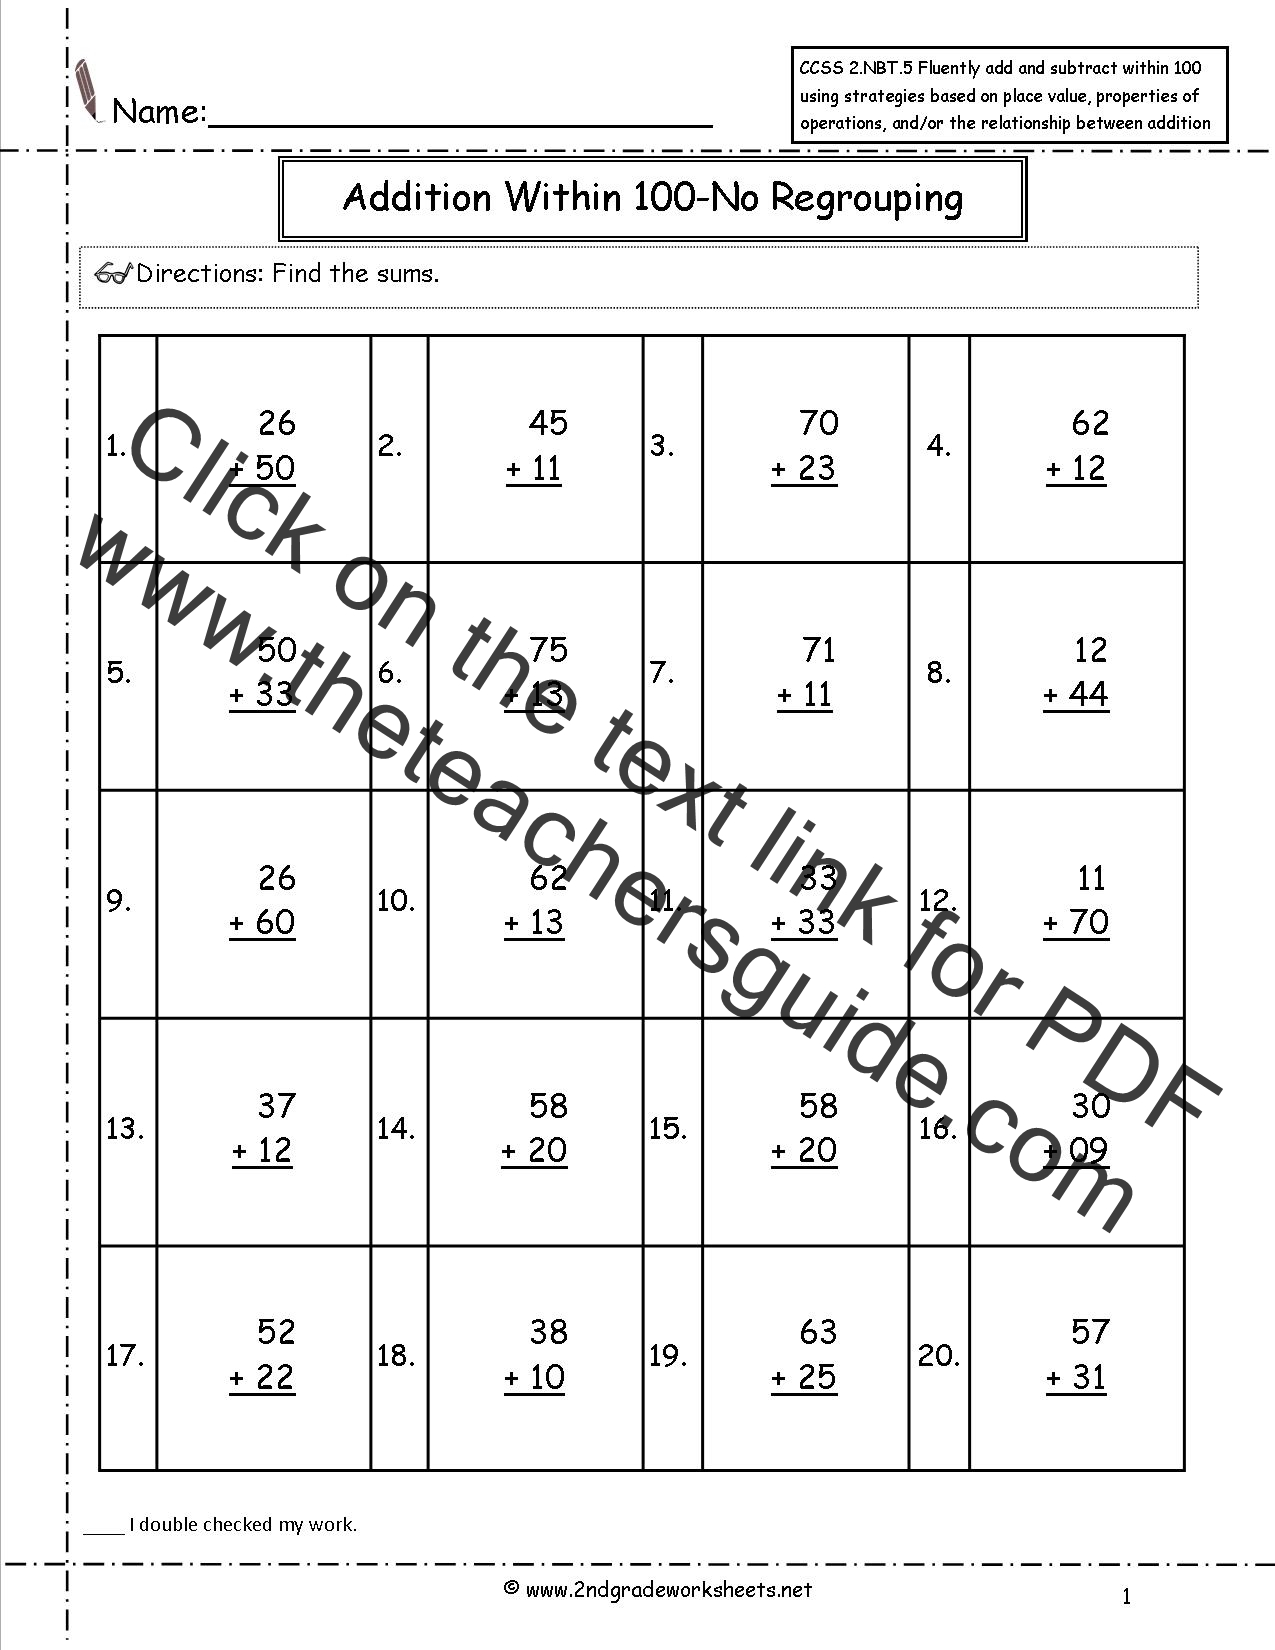 Worksheets Properties Of Operations Worksheet ccss 2 nbt 5 worksheets two digit addition and subtraction within 3 4 6 7 8 9 10 11 12 13 14 15